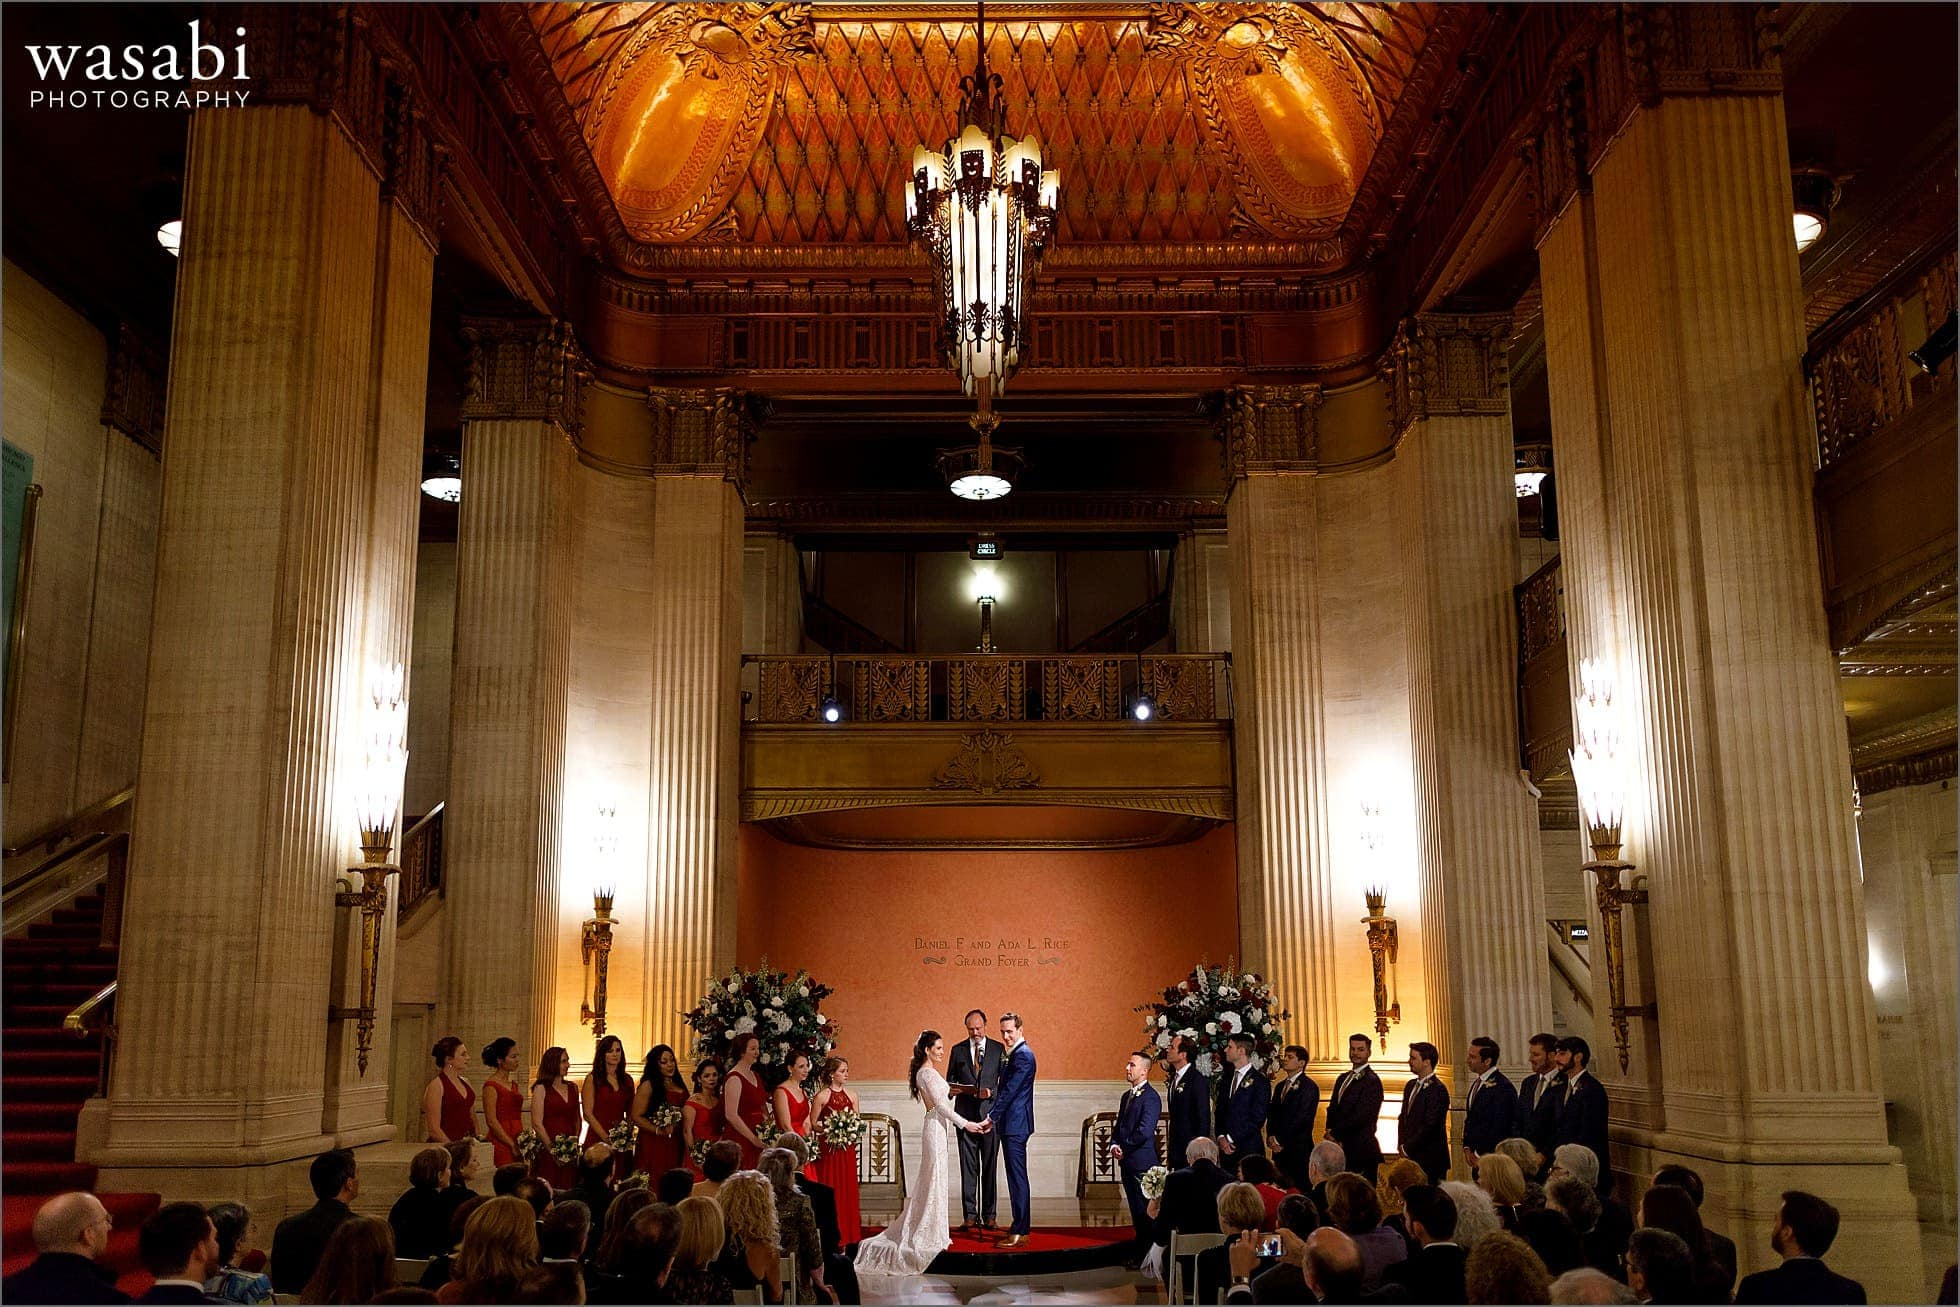 wide angle photo showing entire venue during wedding ceremony at Lyric Opera House wedding